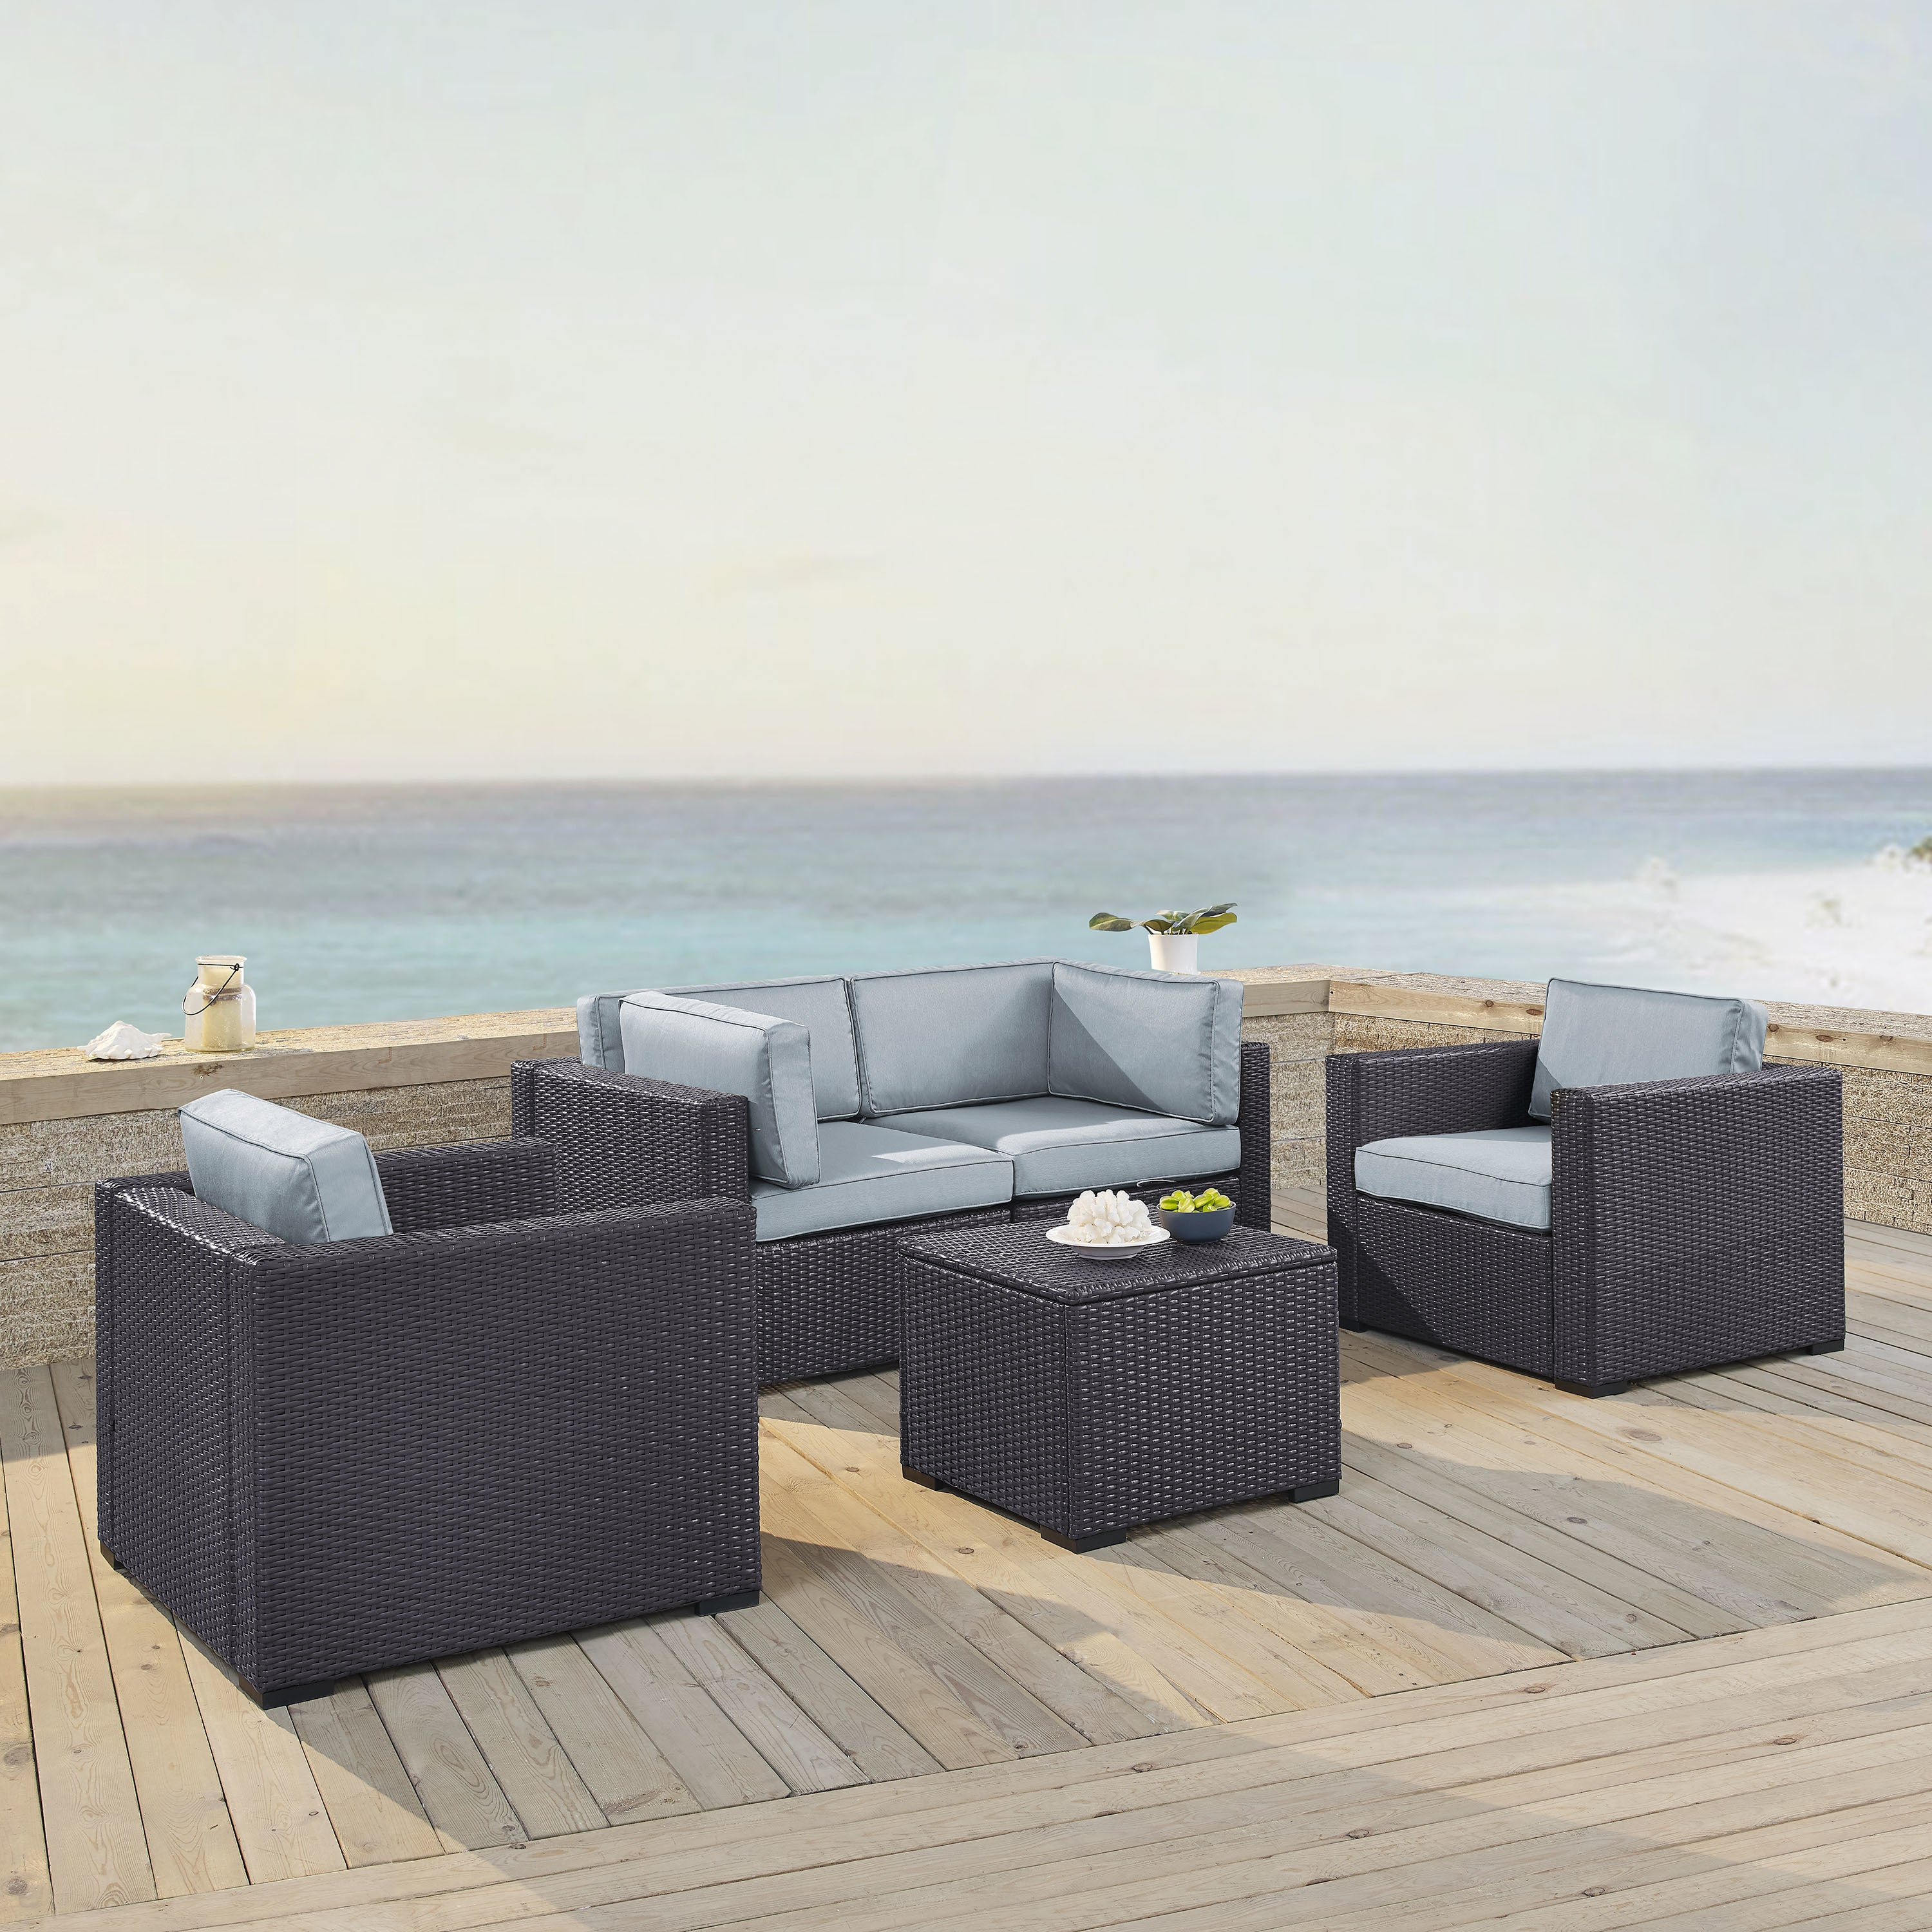 Crosley Furniture Biscayne Outdoor Wicker Mist Seating Se.